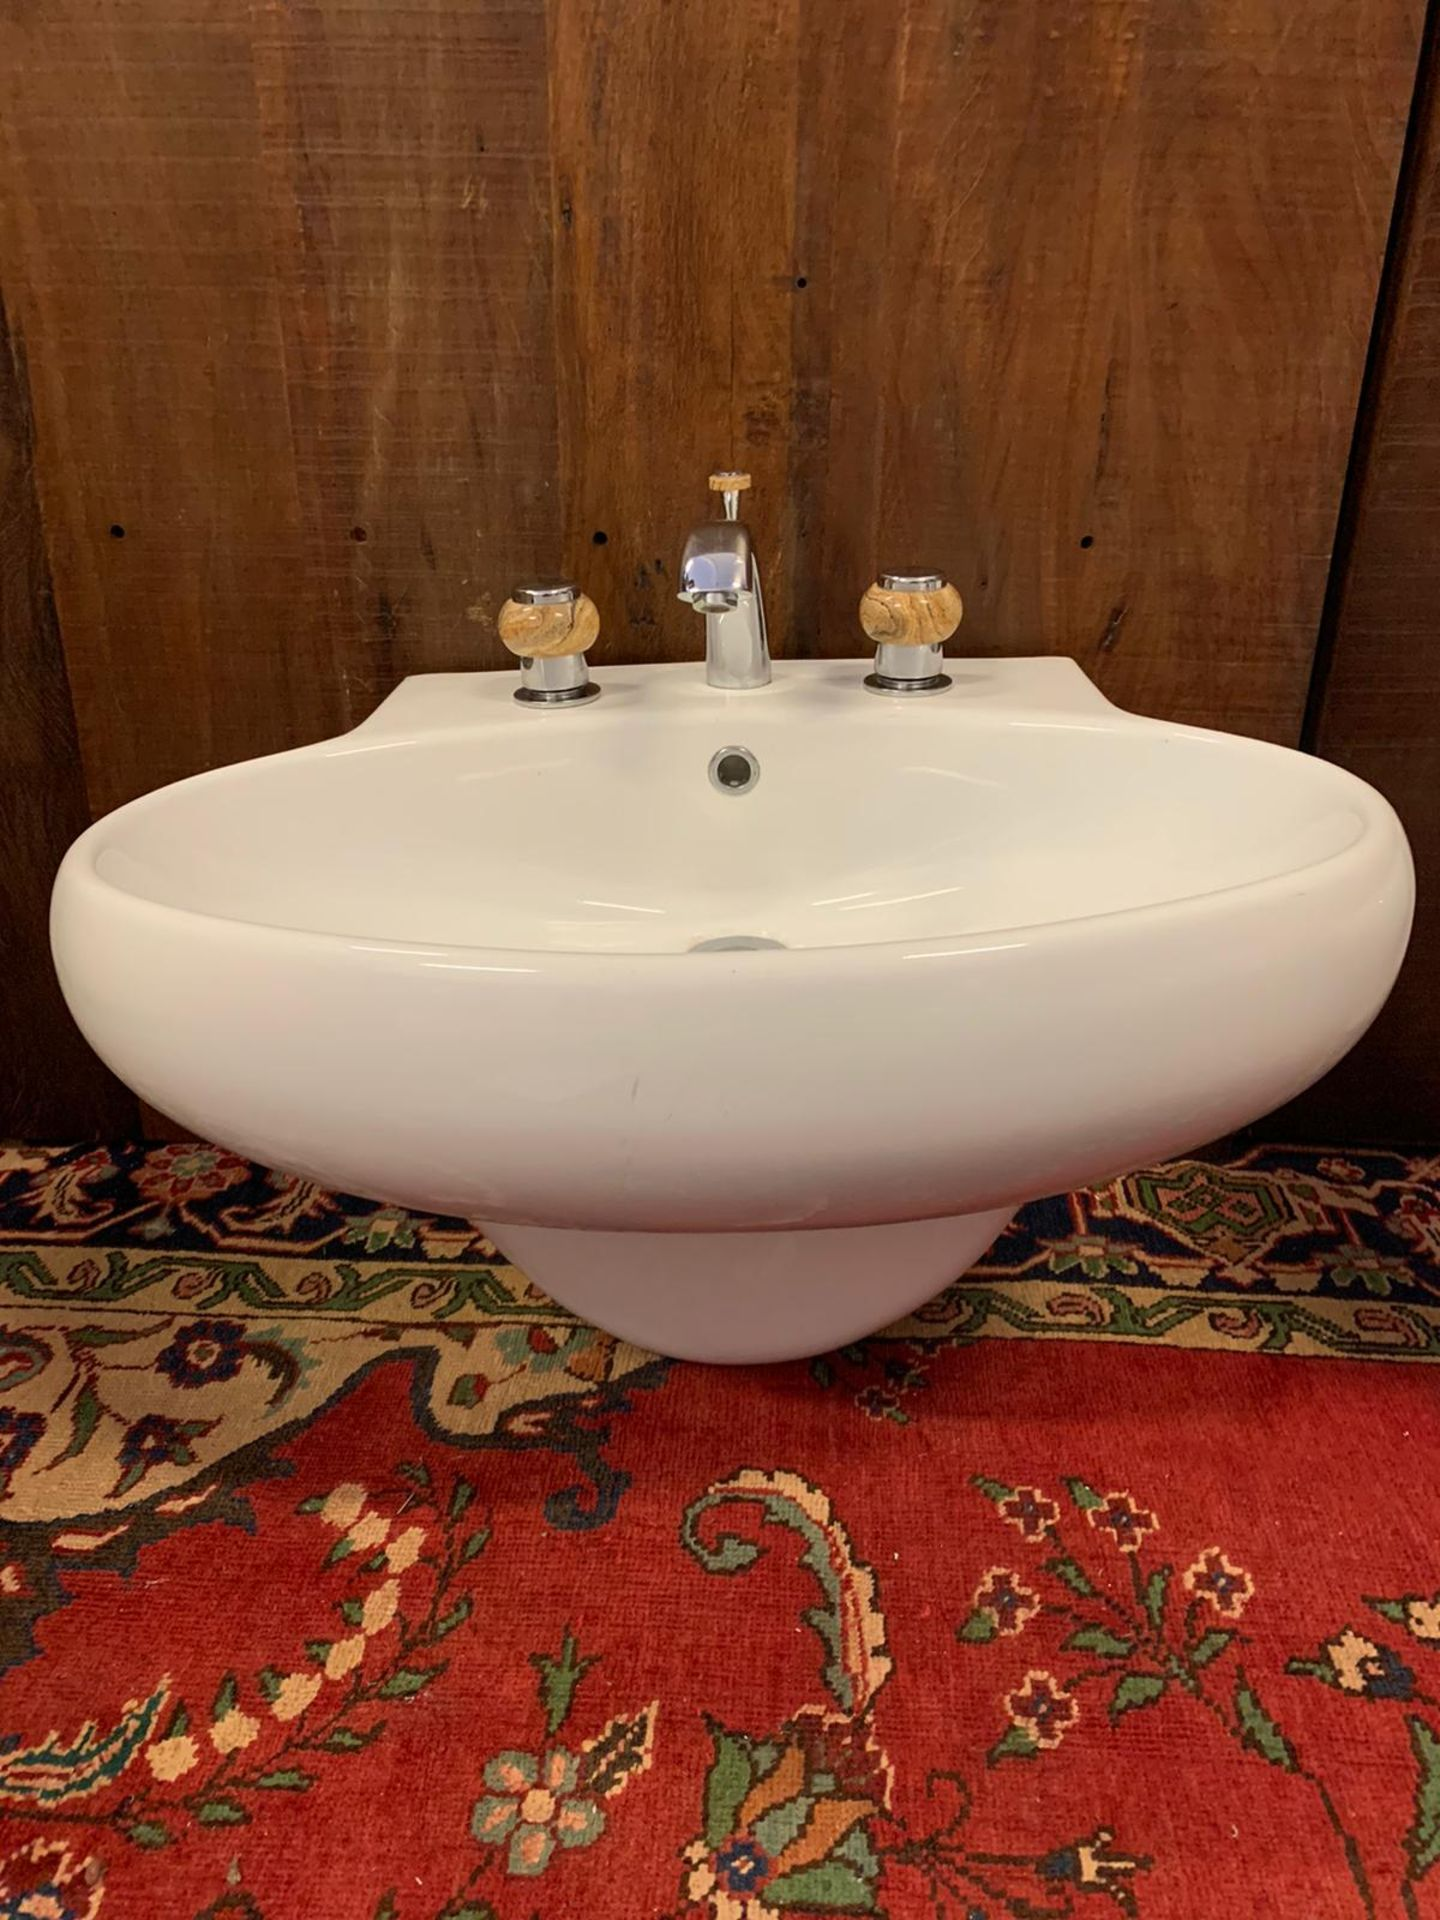 Lot 832 - Floating Handwash Basin With Polished Stone Faucet Taps By Jean-Claude Delepine In Collaboration